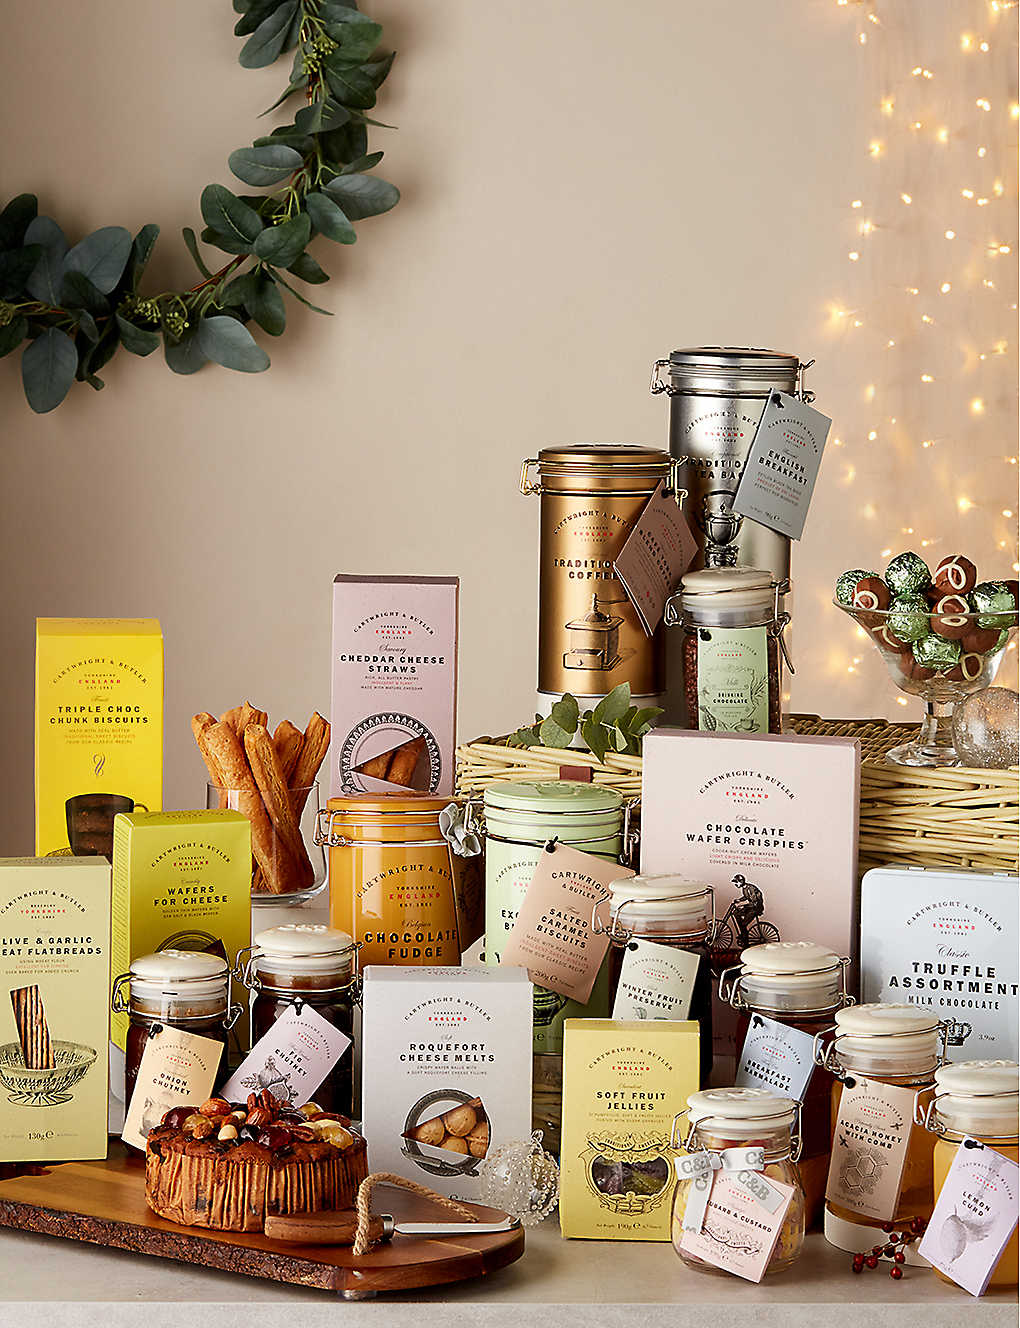 CARTWRIGHT & BUTLER: British Pantry Hamper